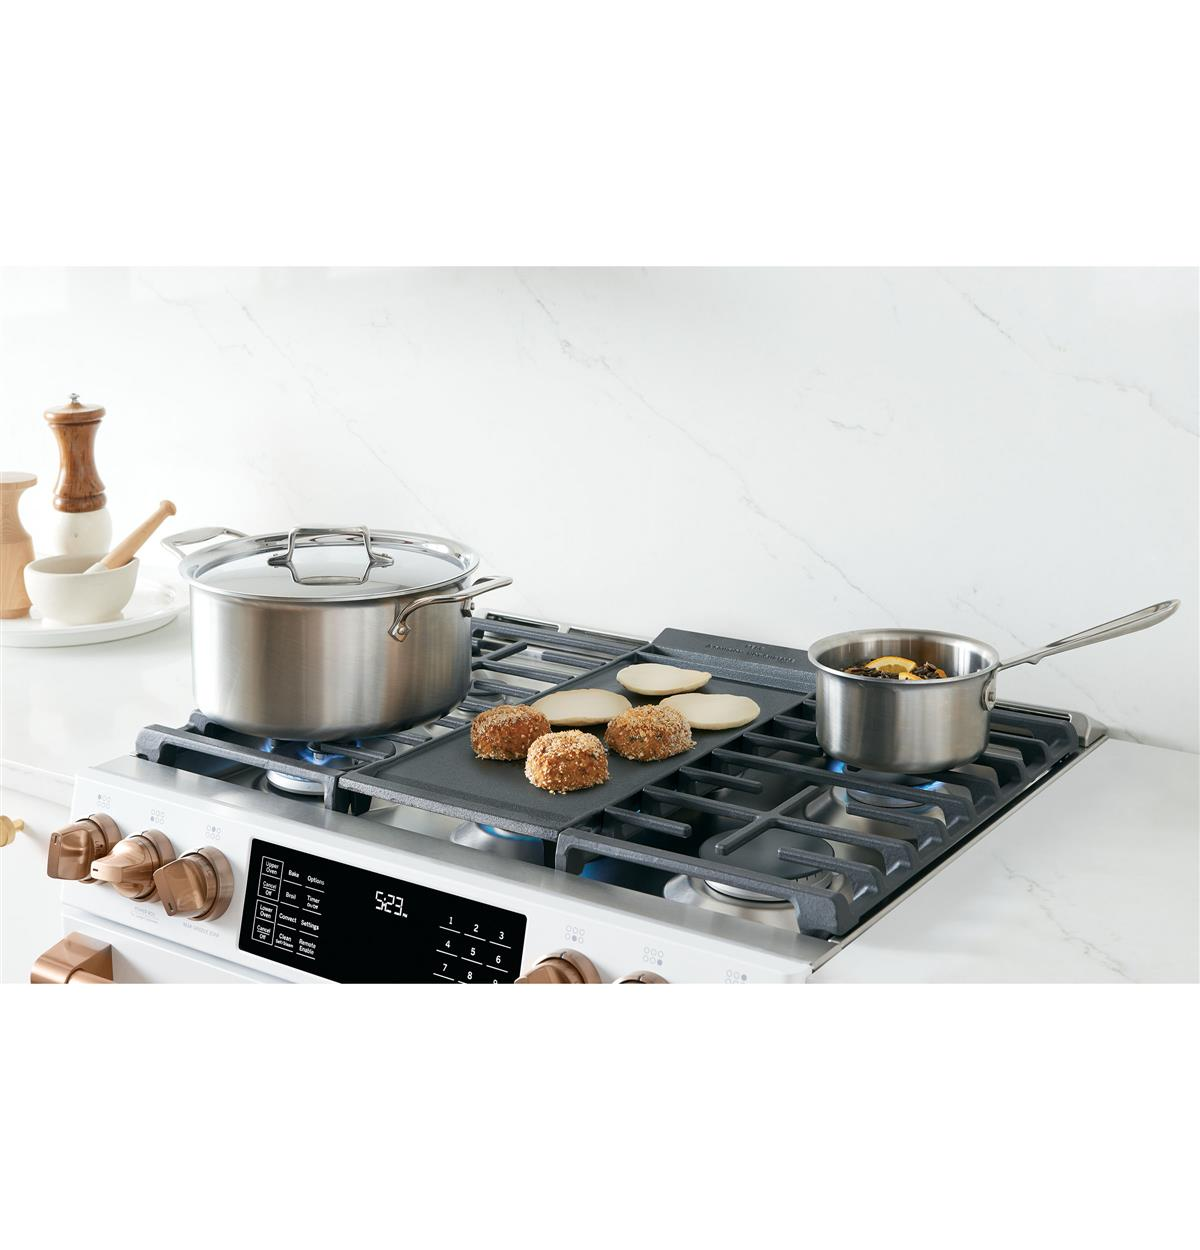 Expansive six-burner cooktop helps you entertain with ease